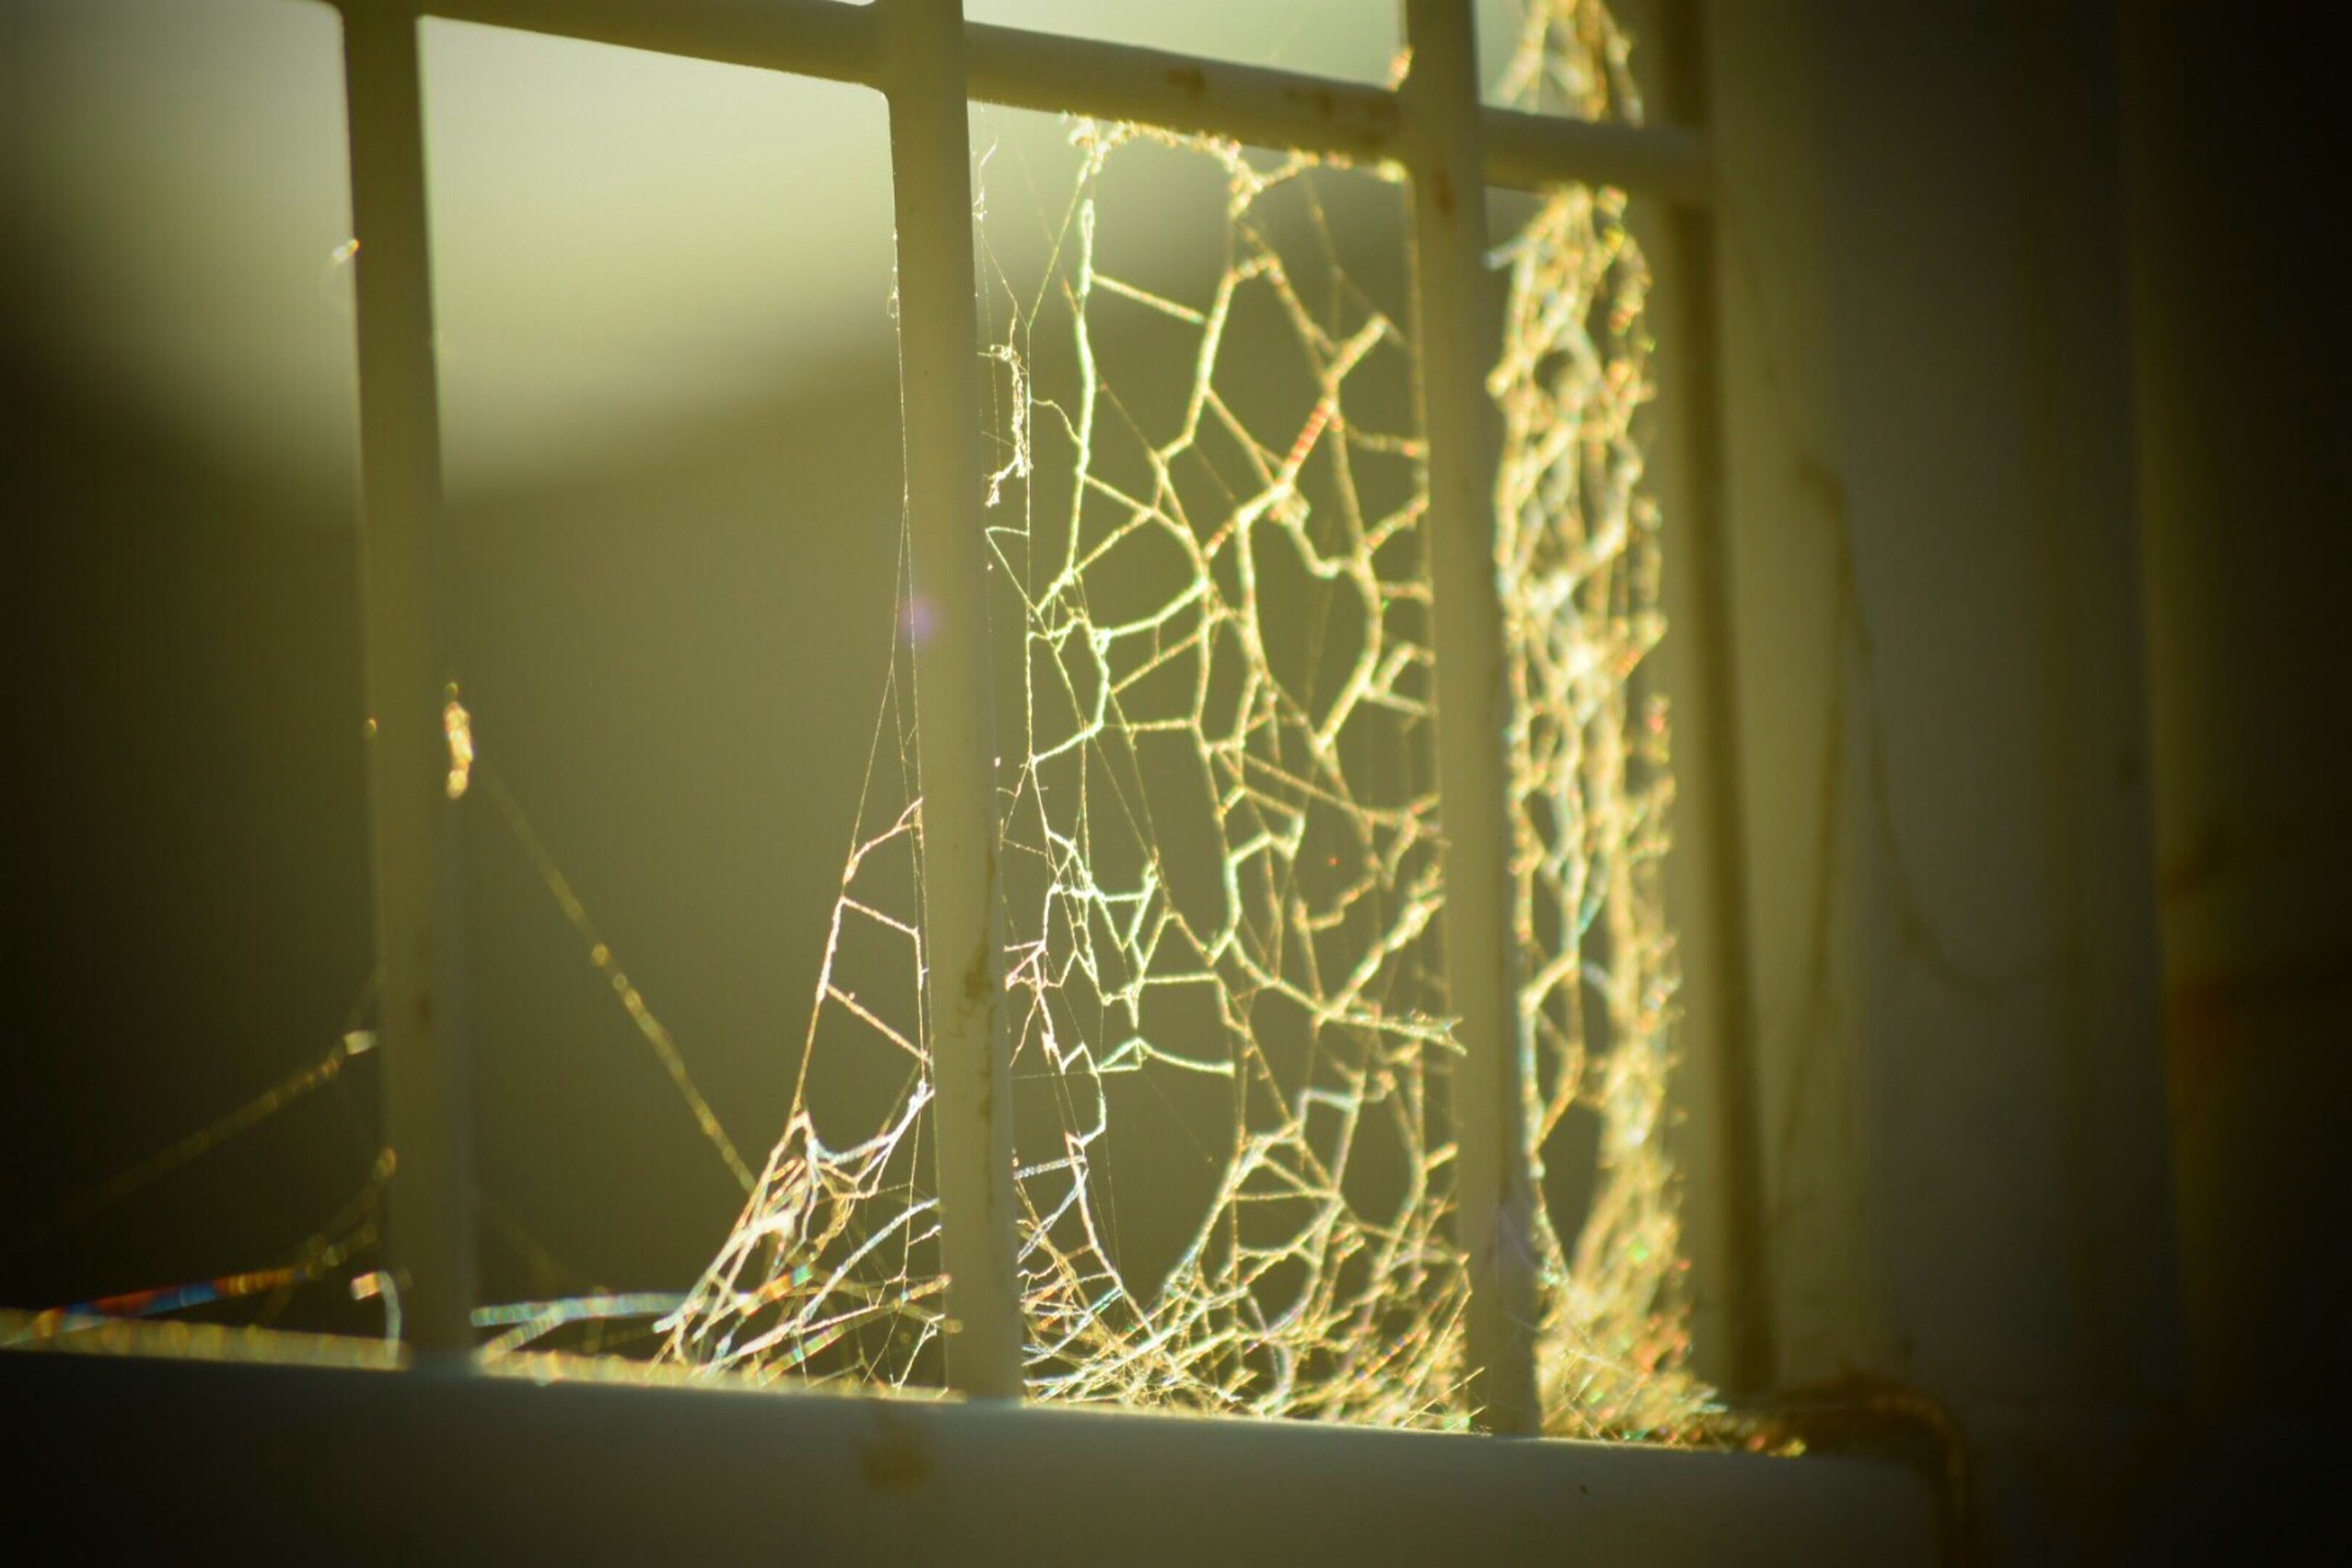 indoors, window, home interior, close-up, focus on foreground, transparent, curtain, glass - material, wall - building feature, sunlight, no people, metal, pattern, day, selective focus, built structure, railing, house, wall, spider web